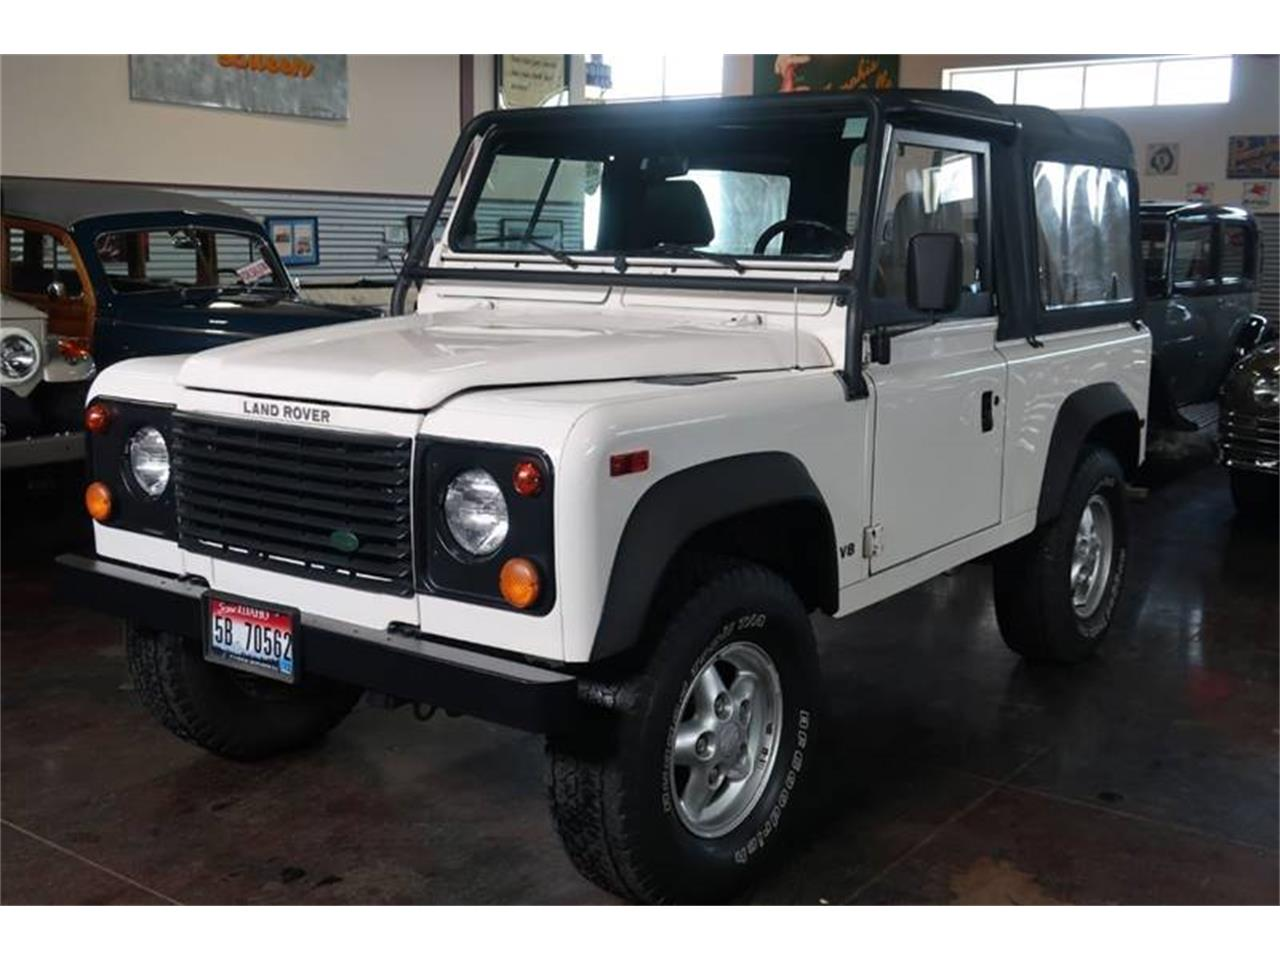 1995 Land Rover Defender for sale in Hailey, ID – photo 8